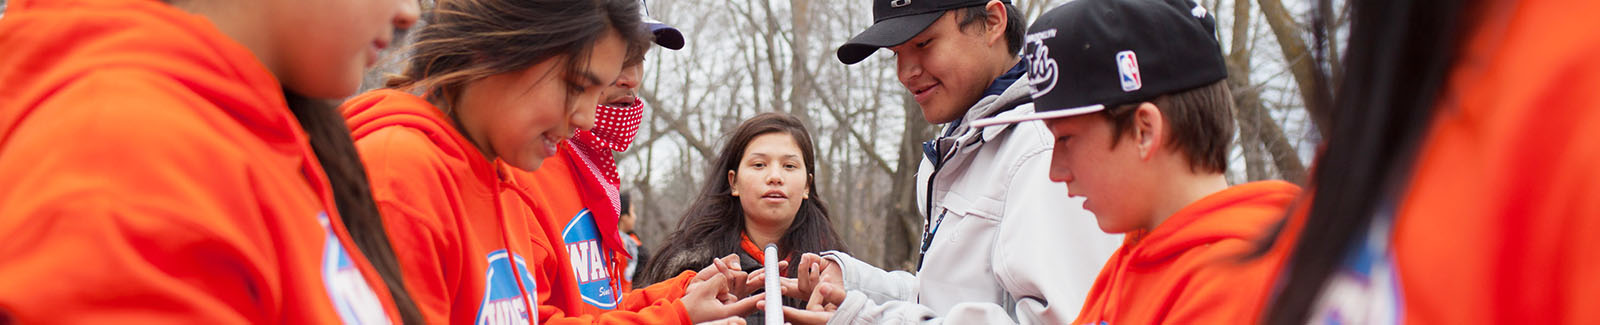 WASAC programs focus on leadership and mentorship skills for Aboriginal youth through sport and recreational programs.